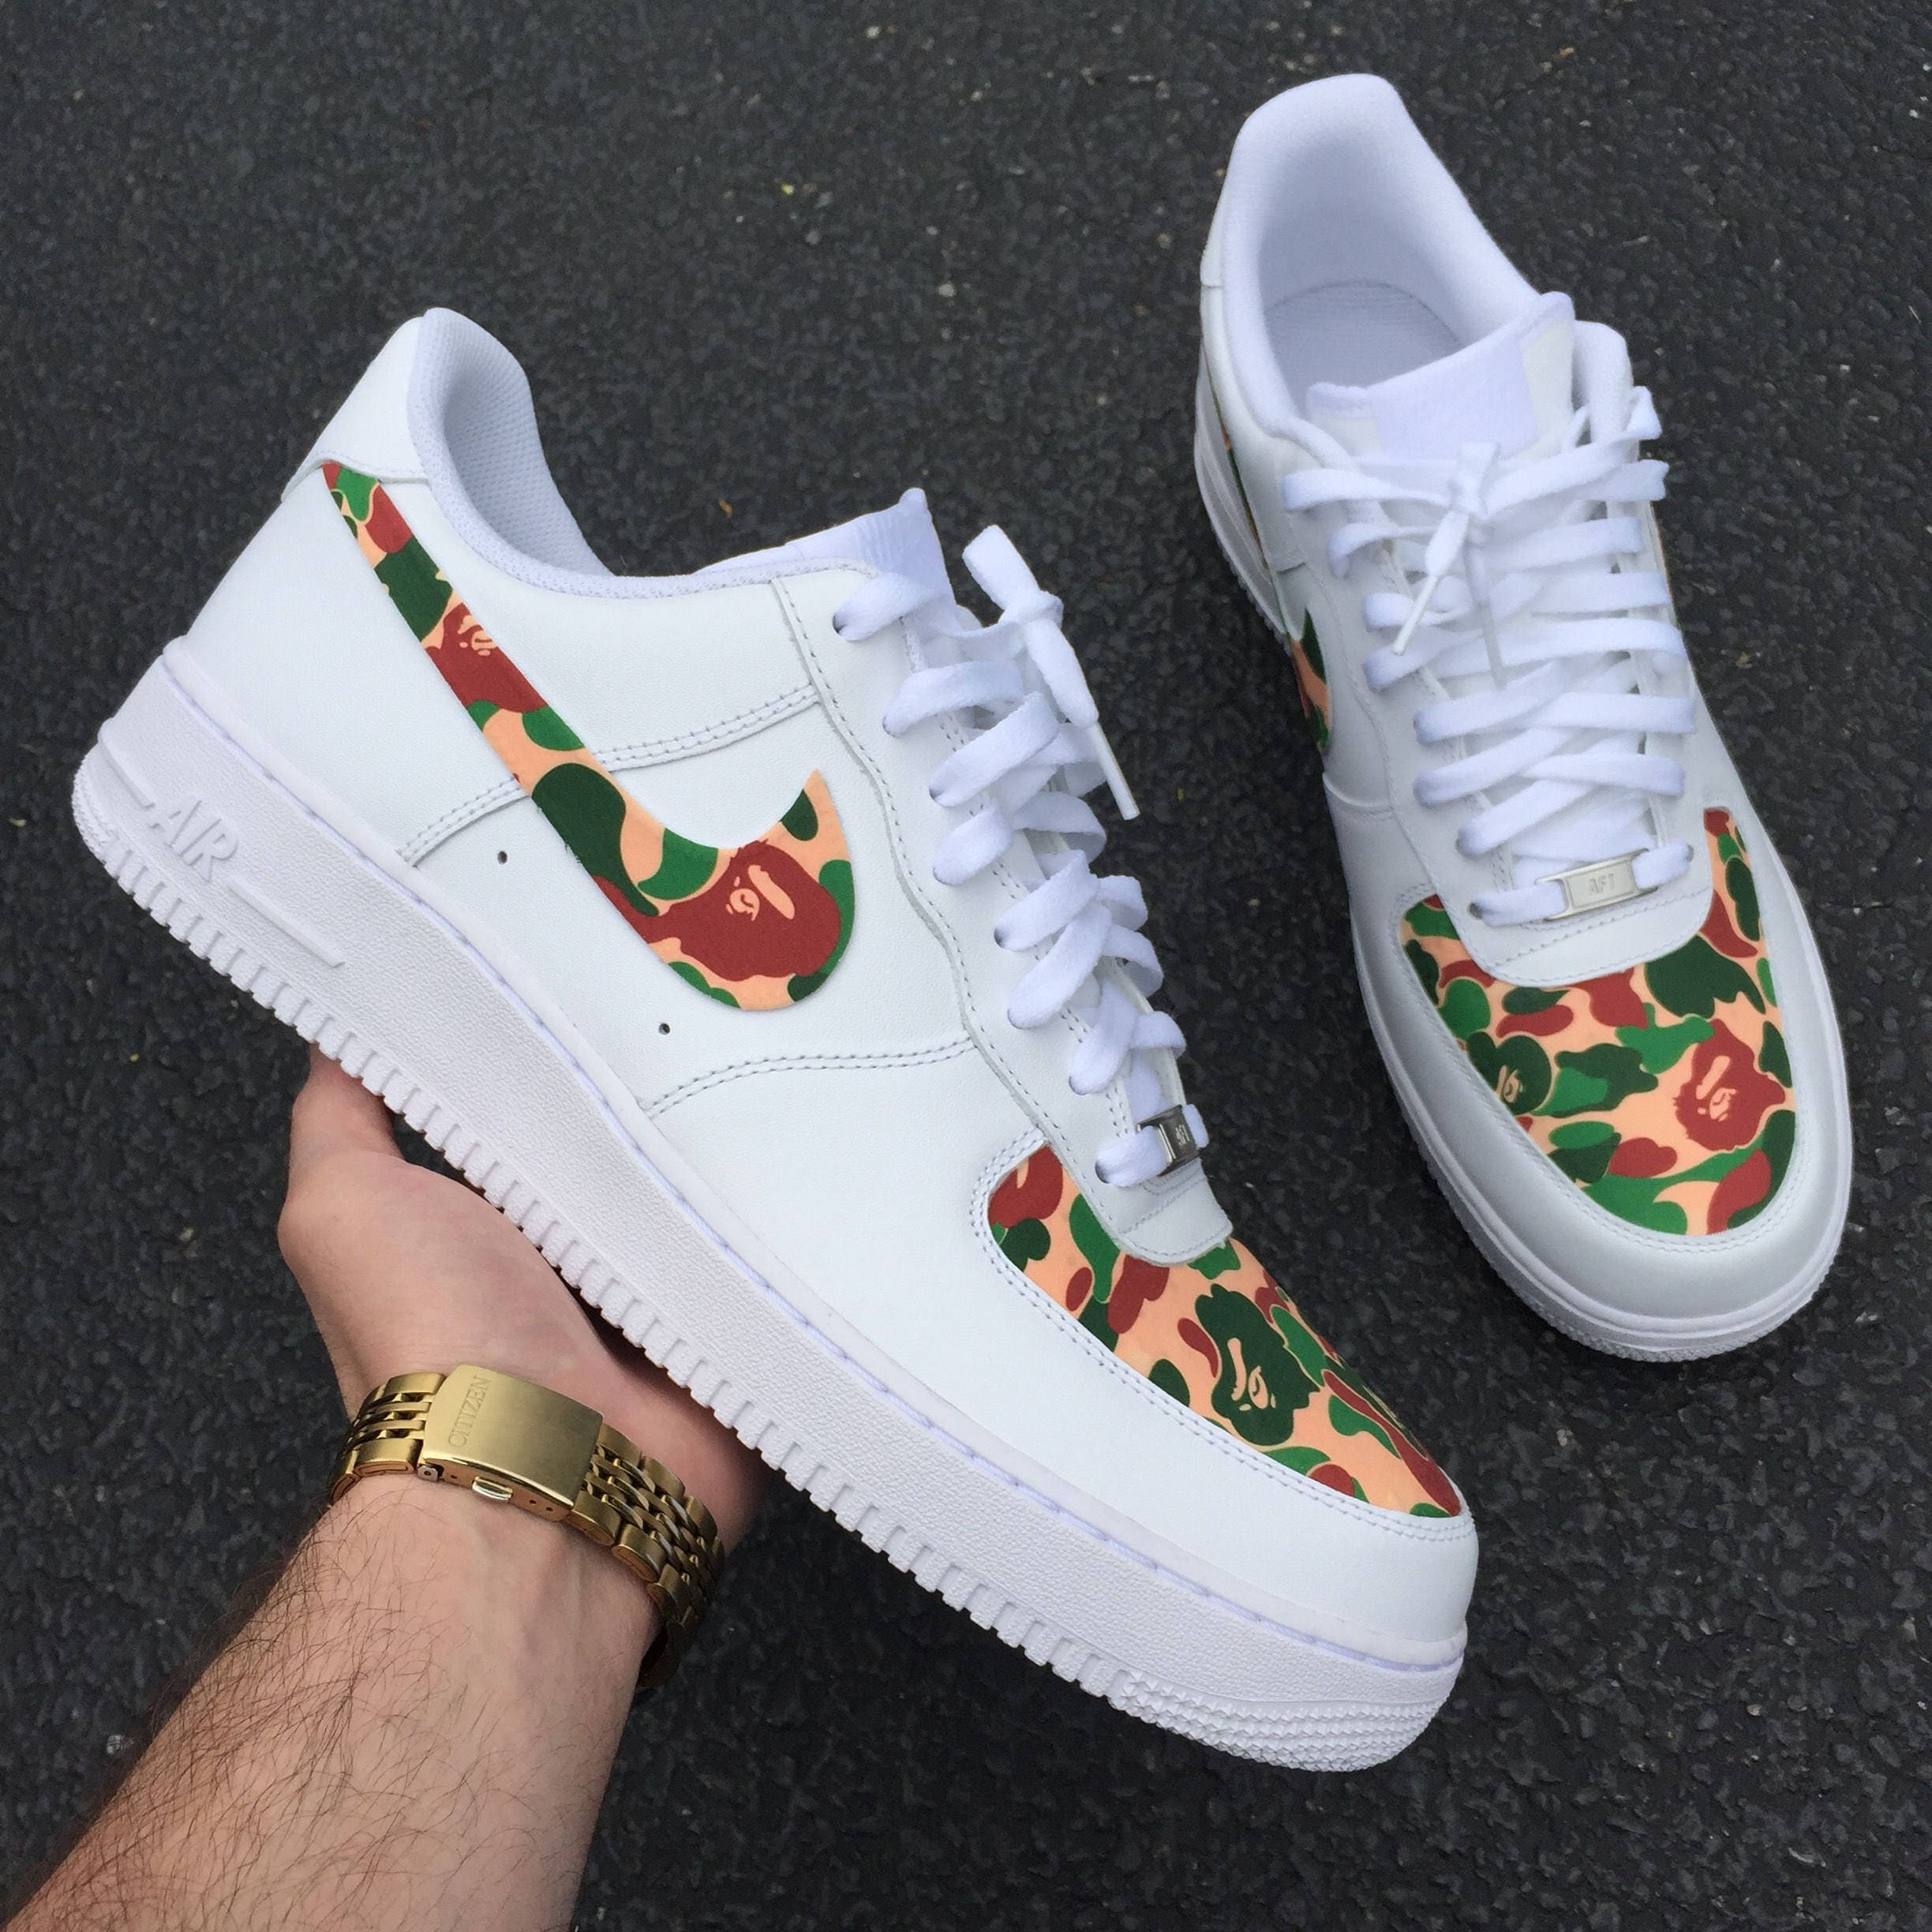 37d1a6d6d1e2 Custom Nike Air Force 1 Low Bape Military Camo